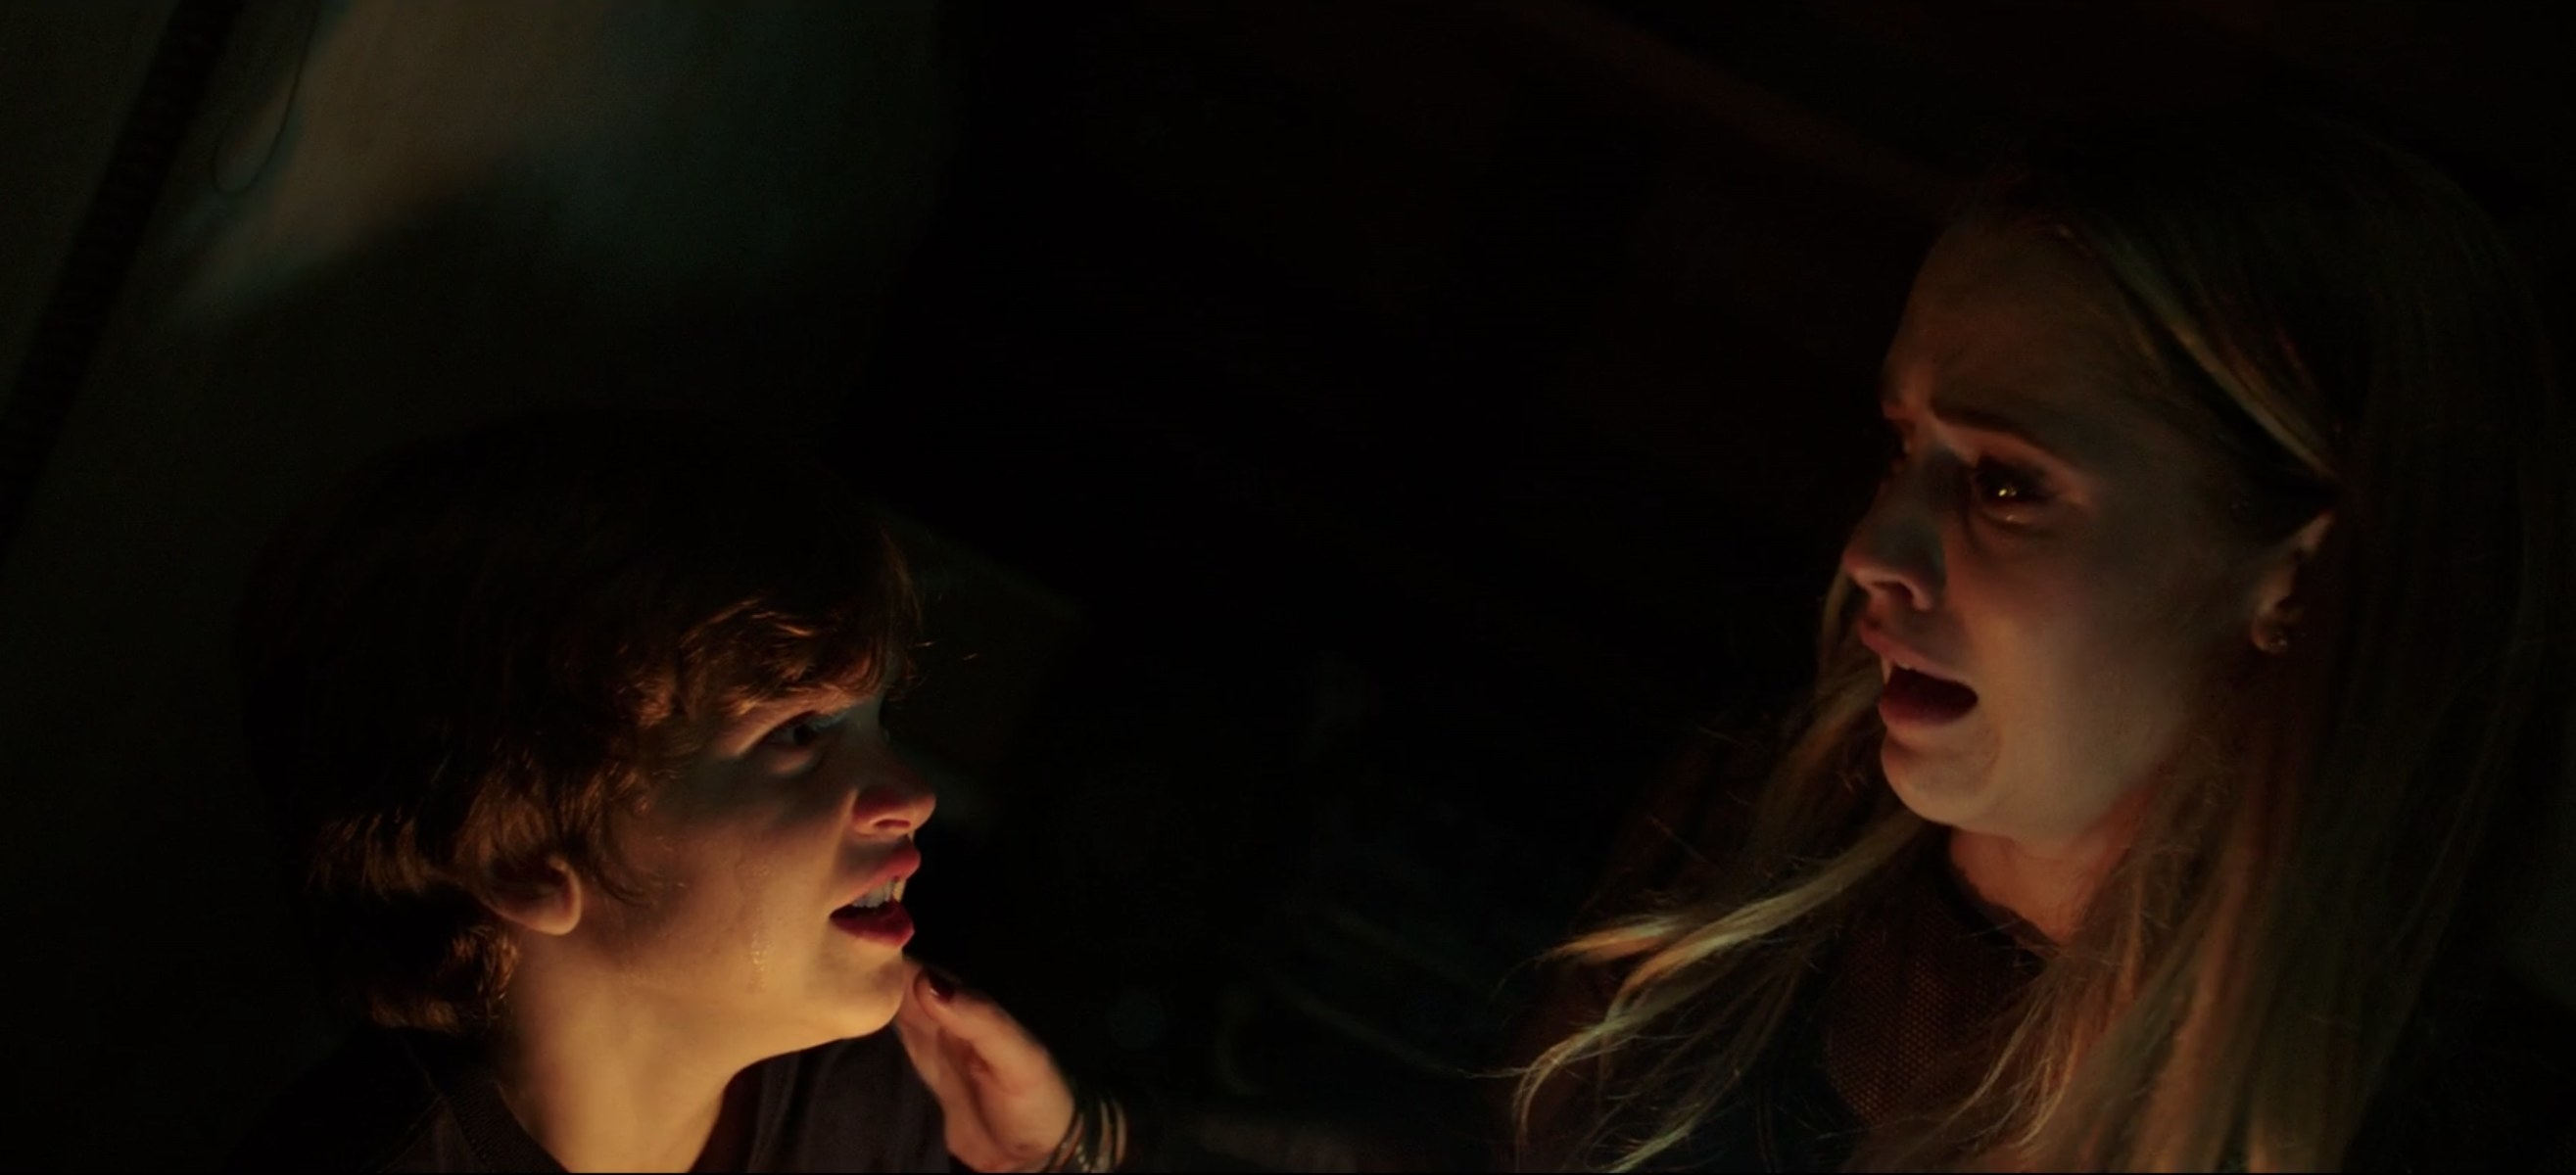 A woman and a little boy staring at each other in the dark with dim lighting